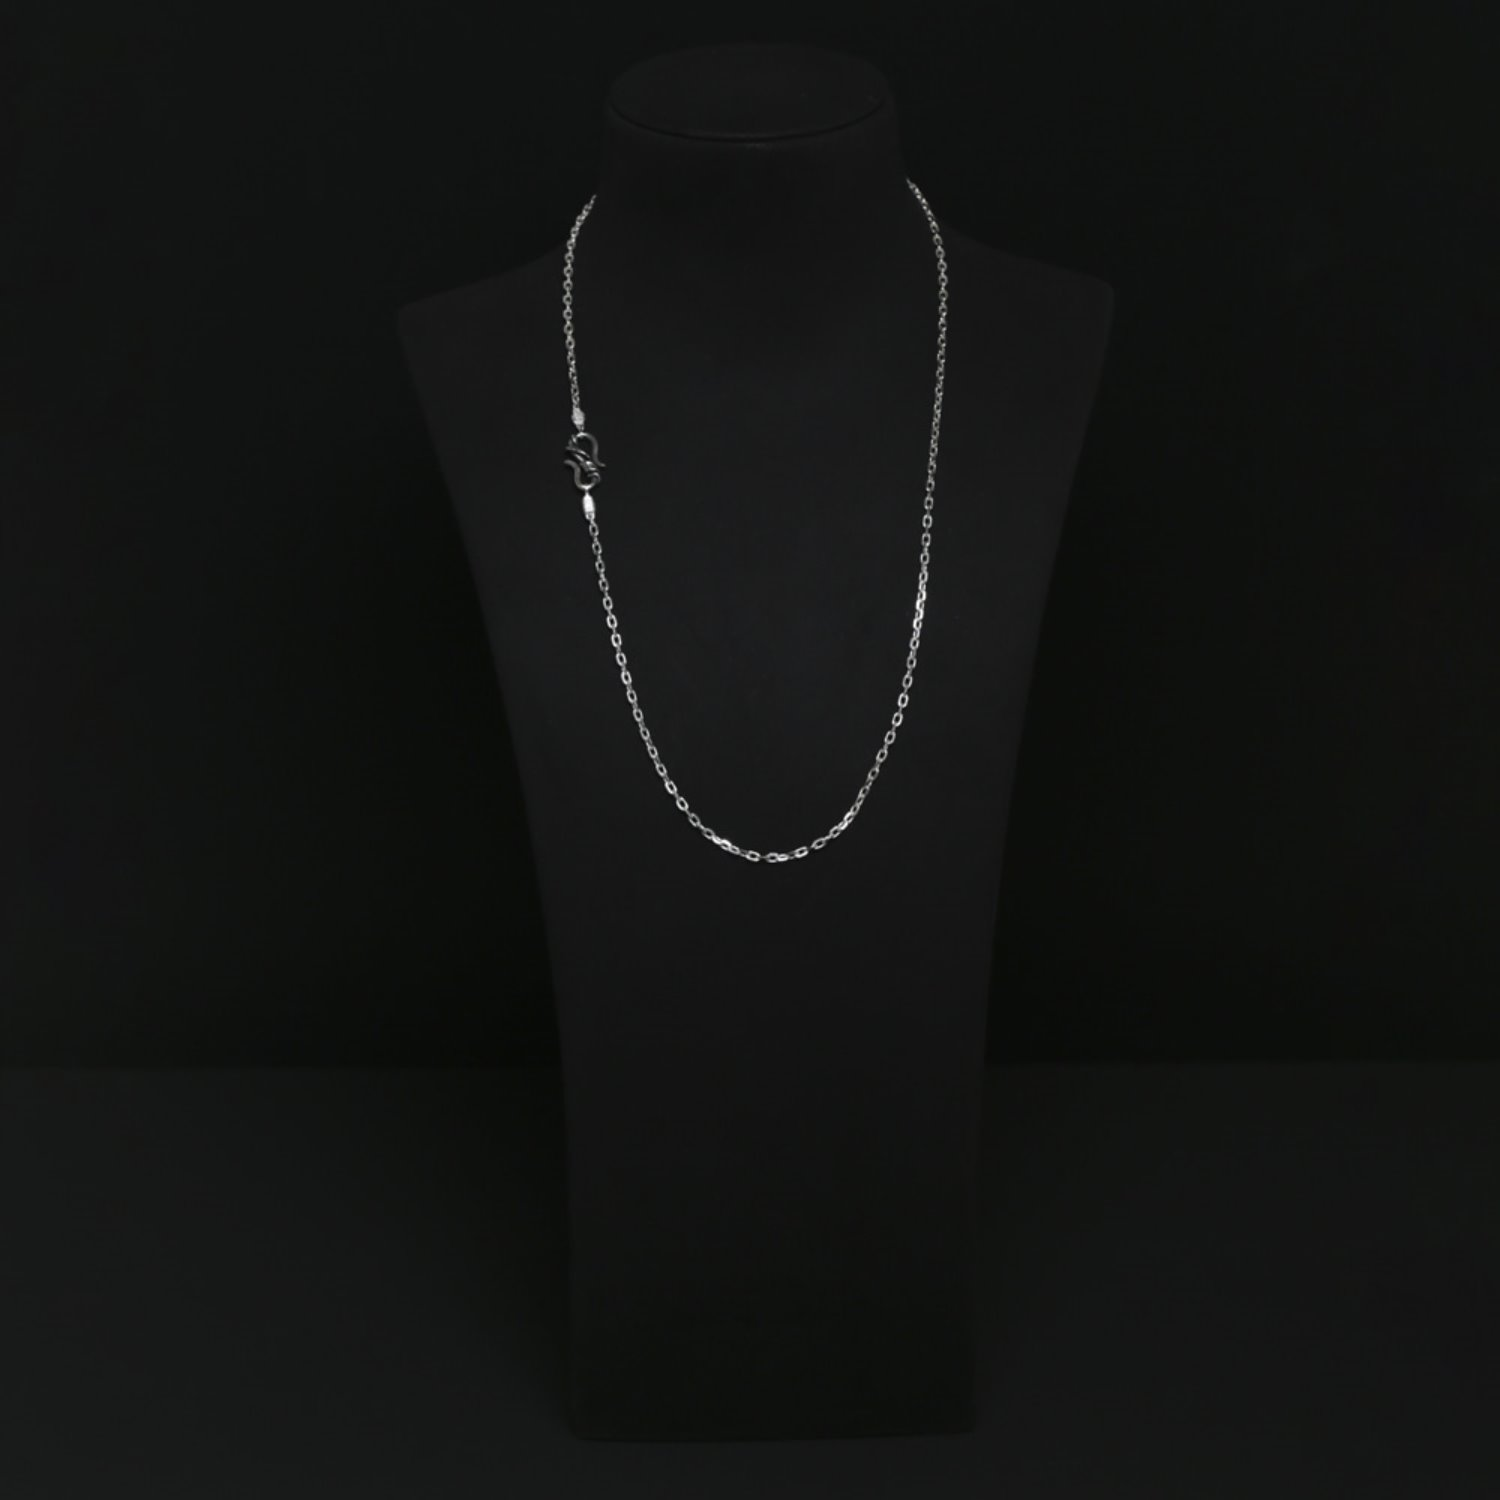 HD-Necklace Silver925